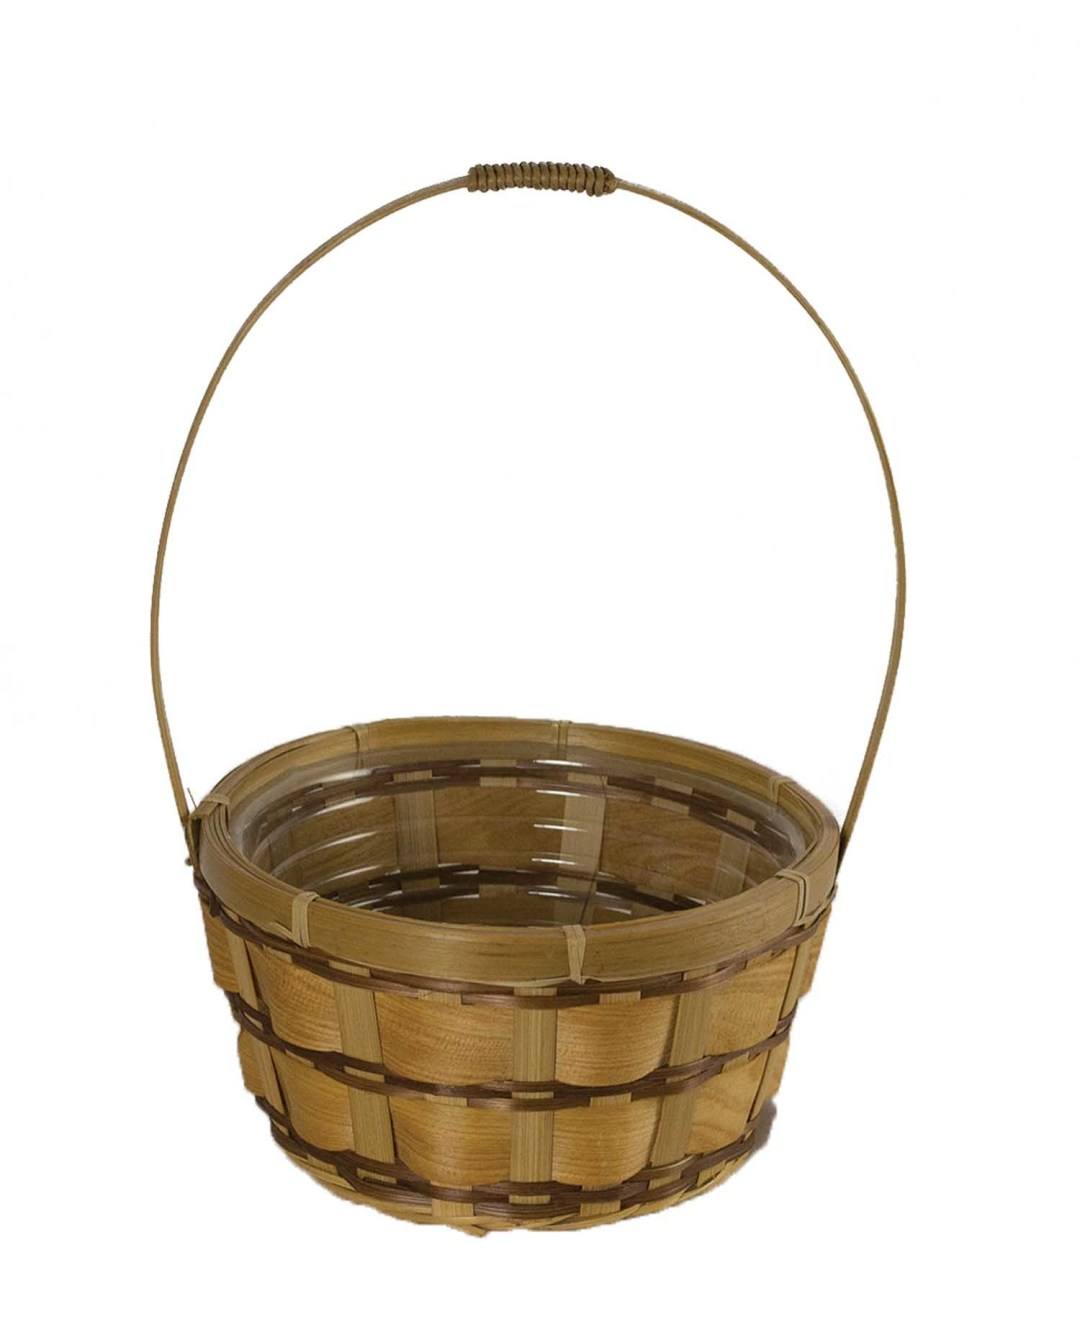 "MS1707-7 - 7"" Round Woodchip Slat Basket With Handle W/L Liner Included MS1707-7"